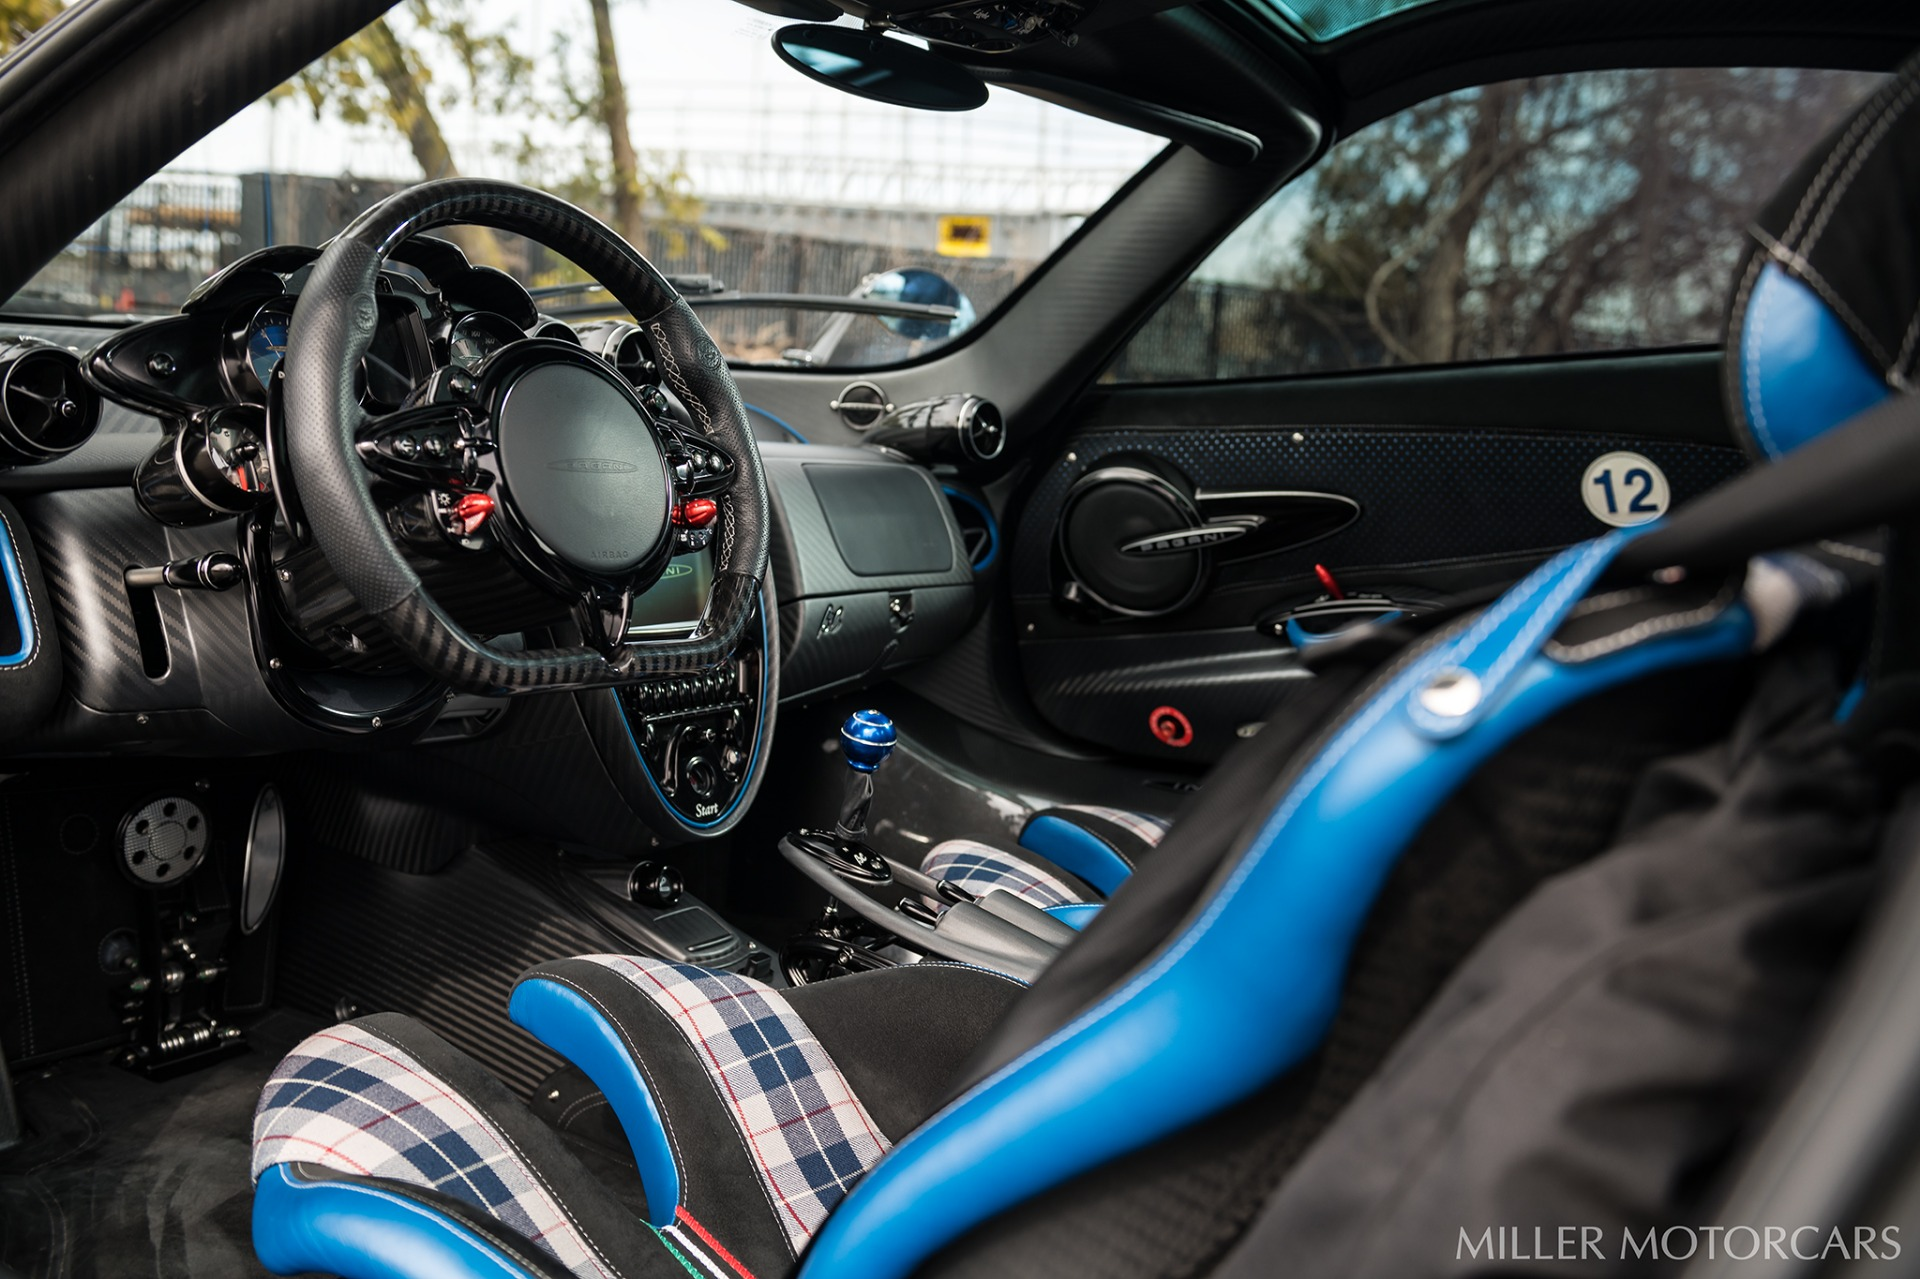 Used 2017 Pagani Huayra BC Macchina Volante For Sale In Greenwich, CT 3051_p34